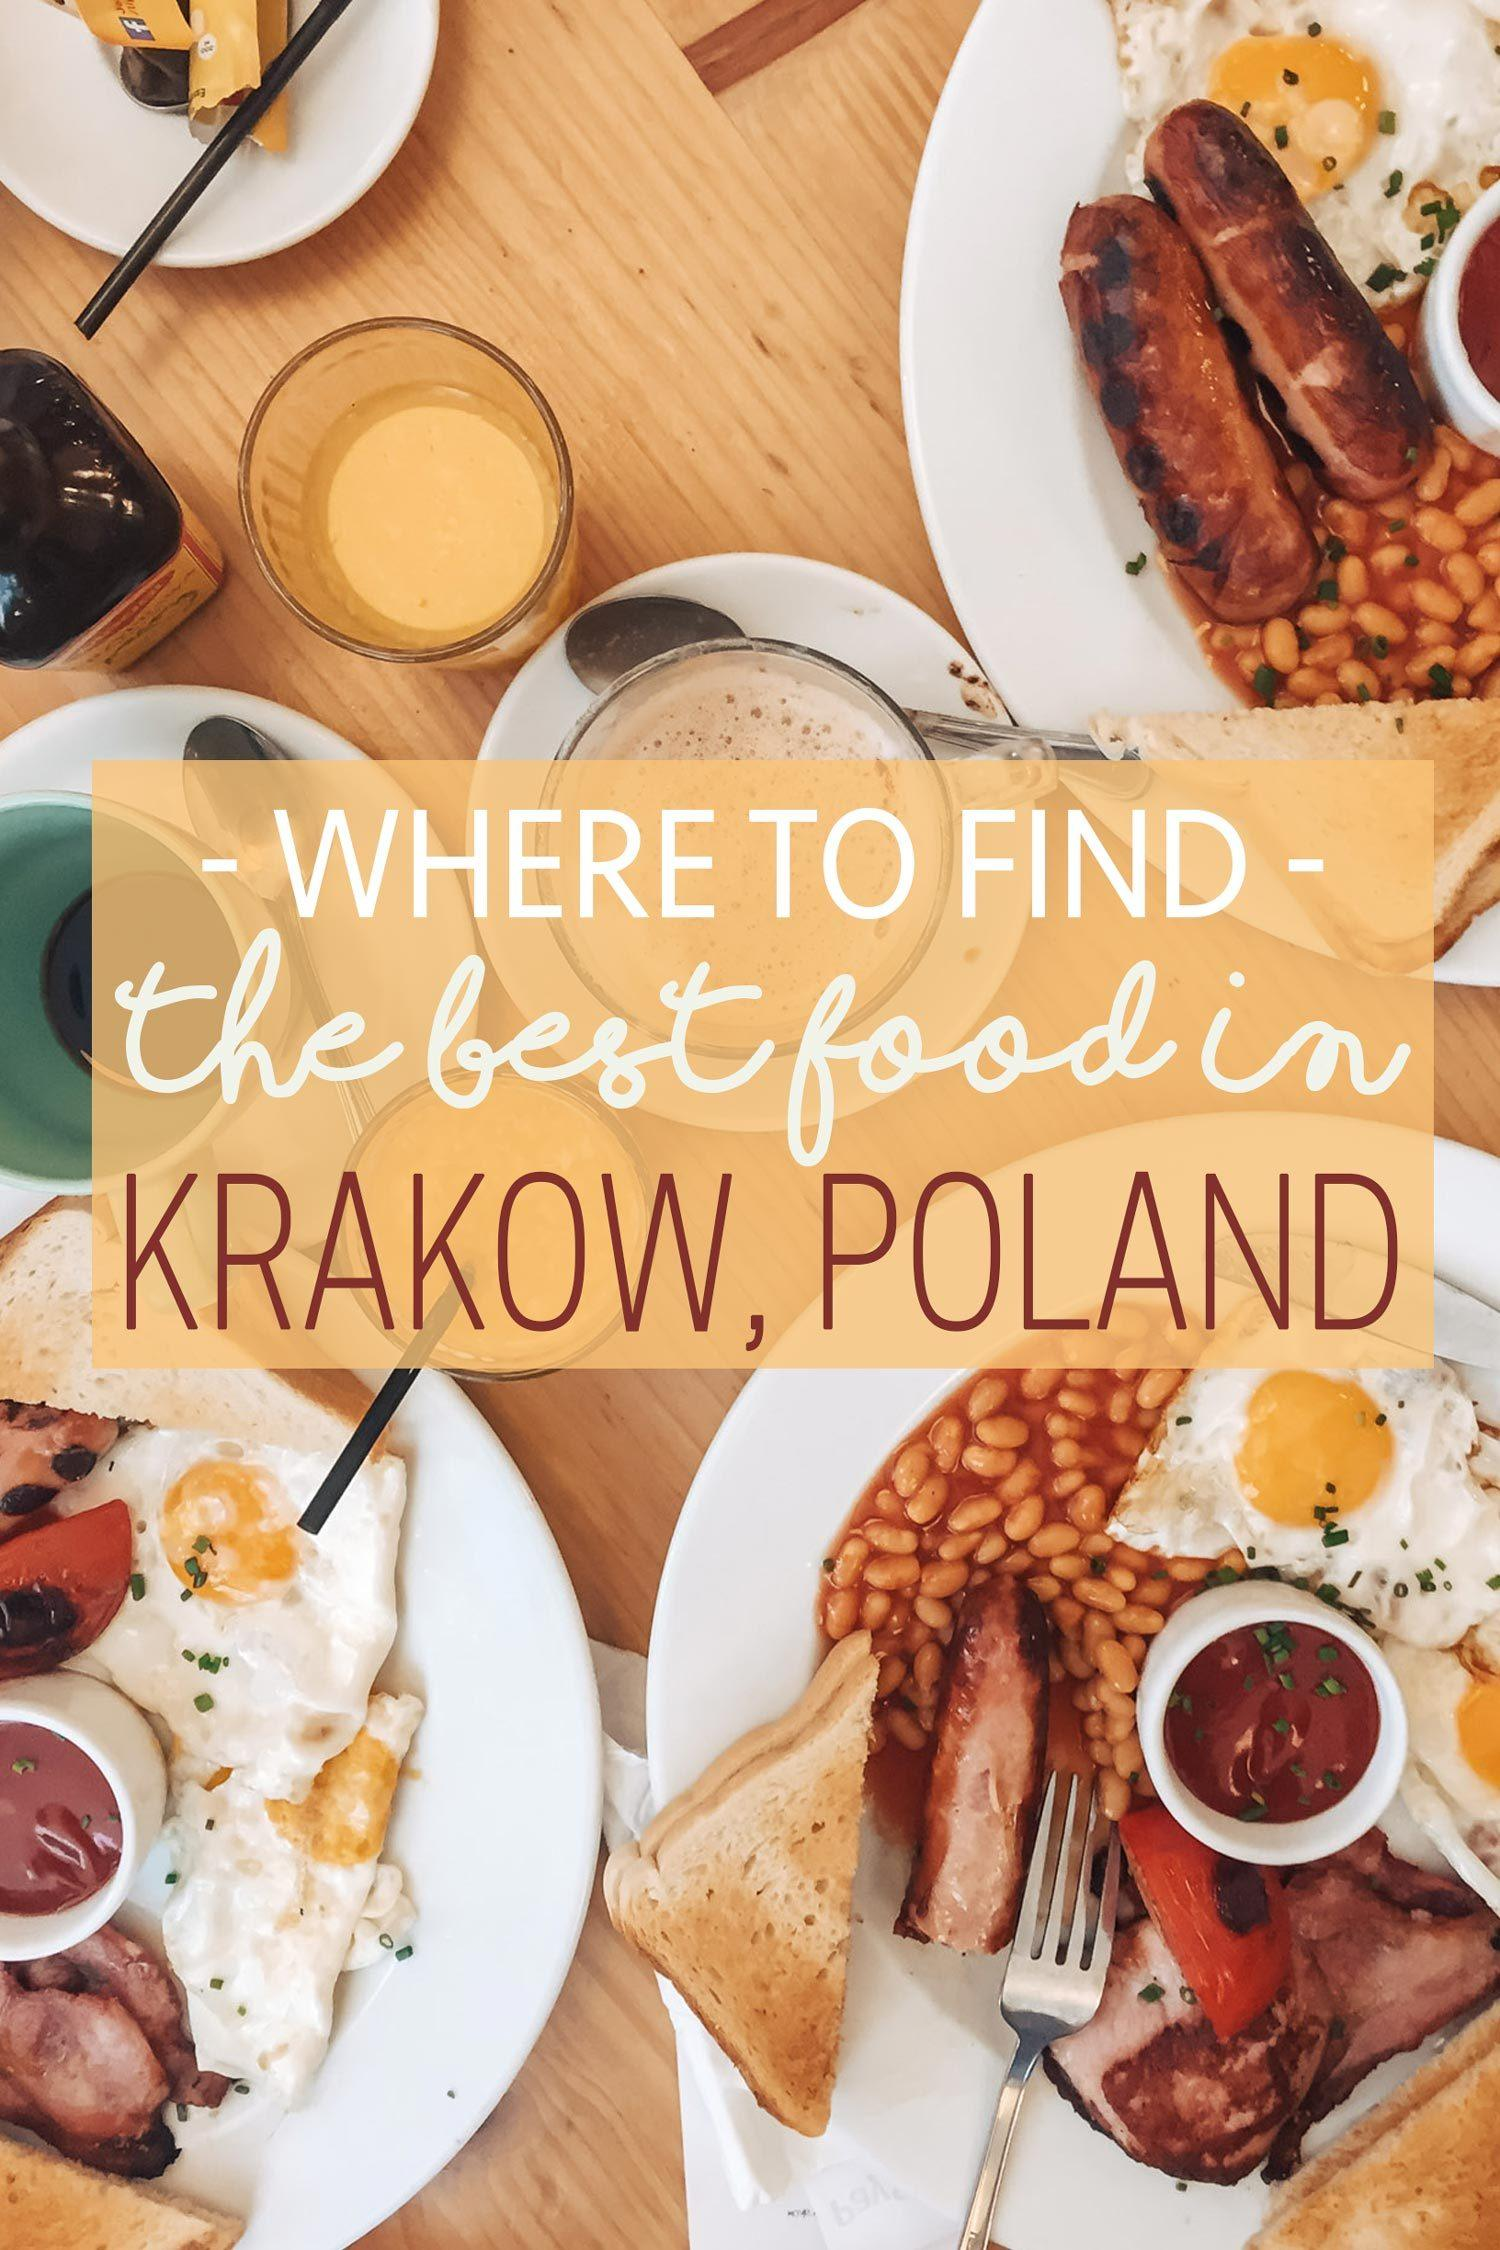 Where to Find the Best Food in Krakow